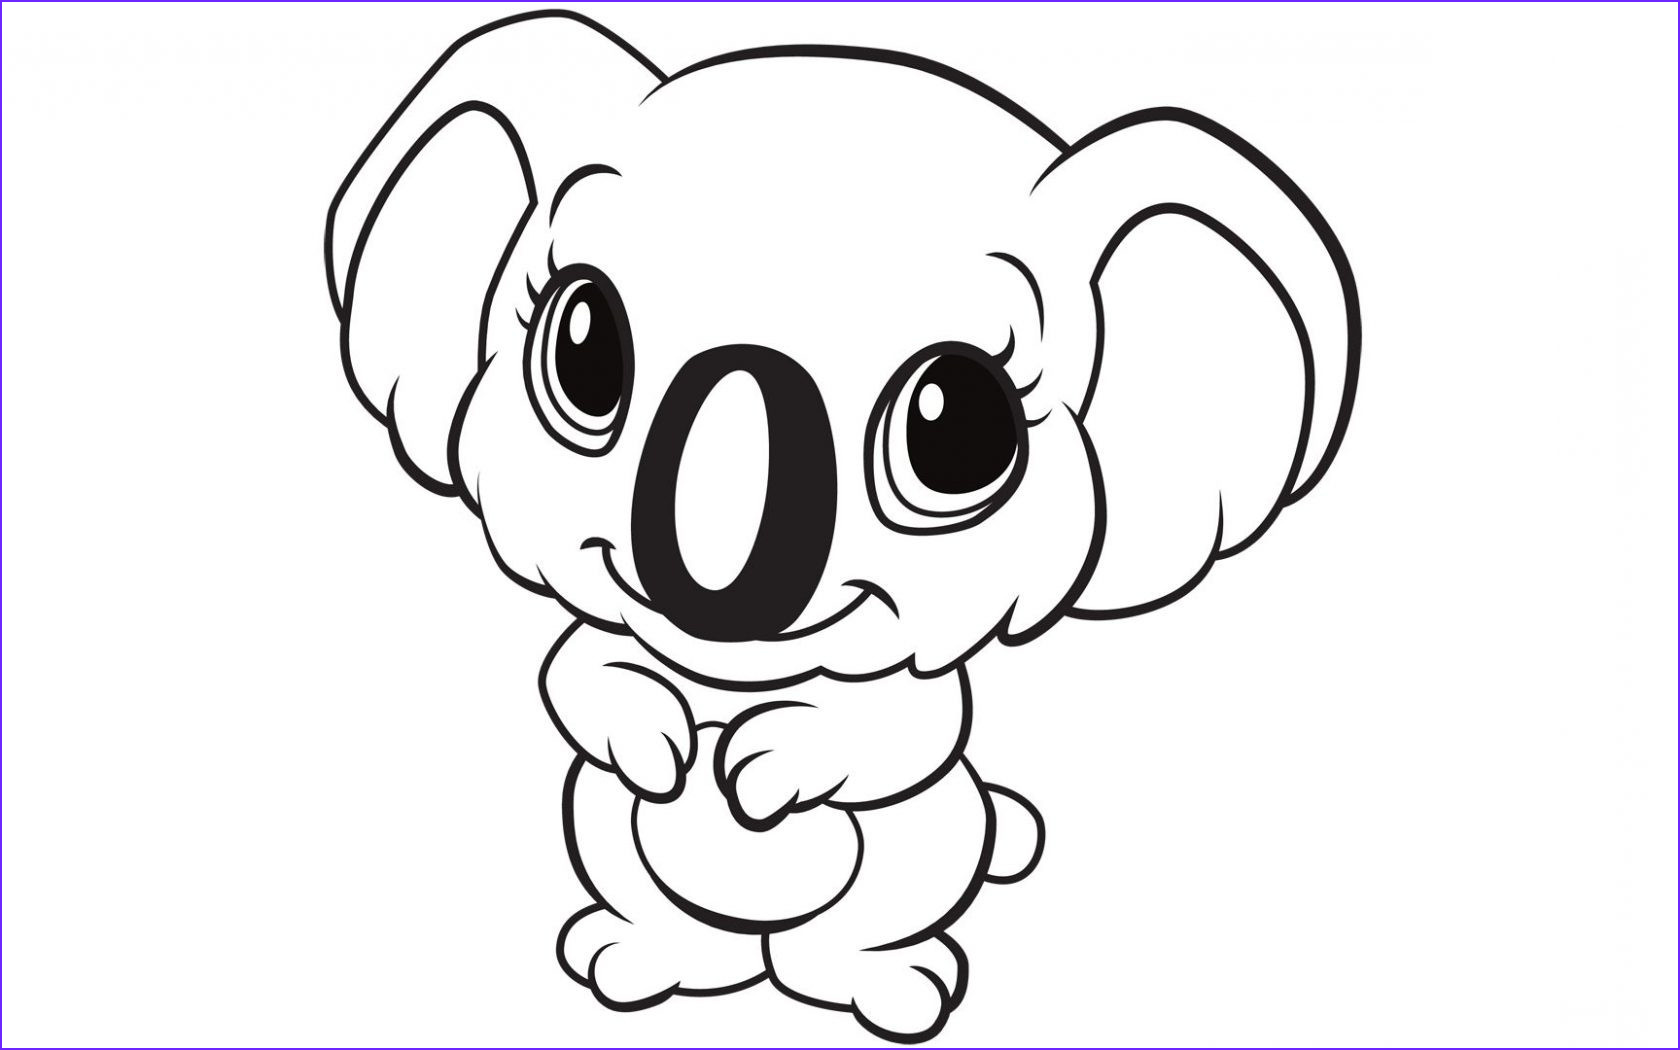 Free Printable Animal Coloring Pages Beautiful Images Animal Coloring Pages Best Coloring Pages for Kids